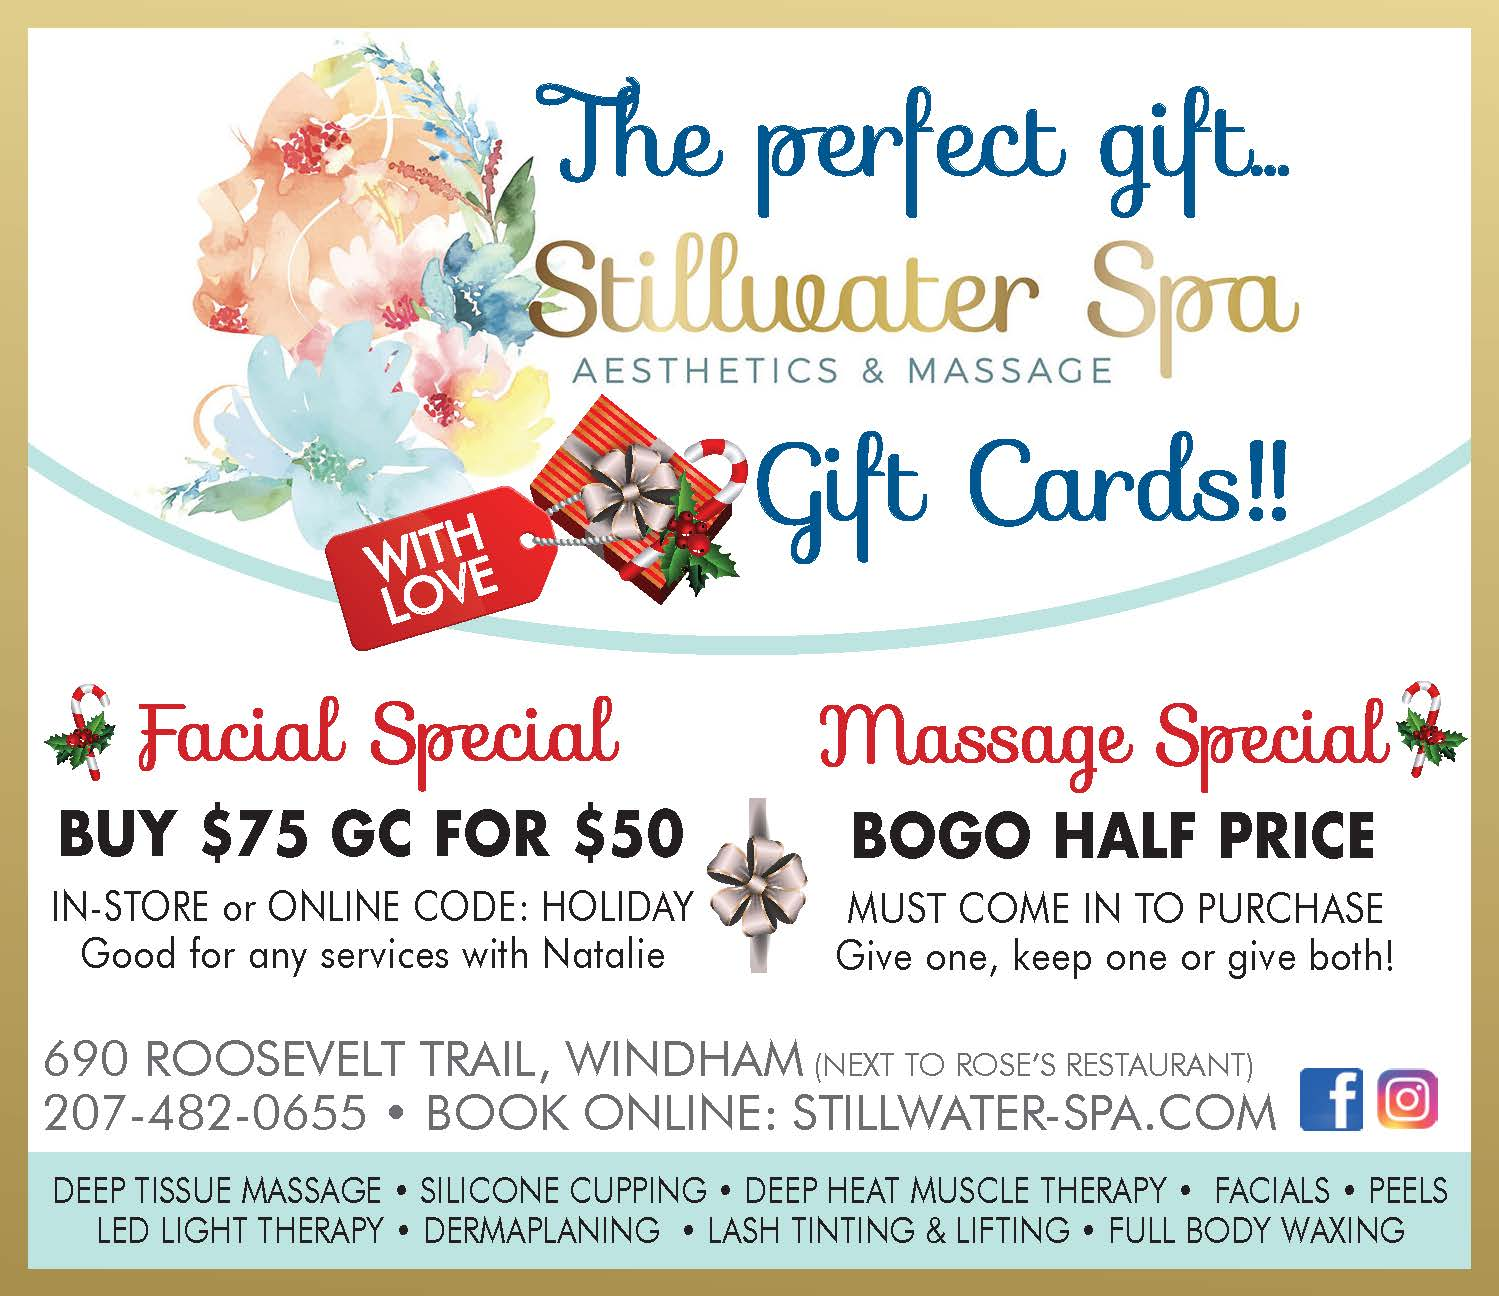 https://www.stillwater-spa.com/